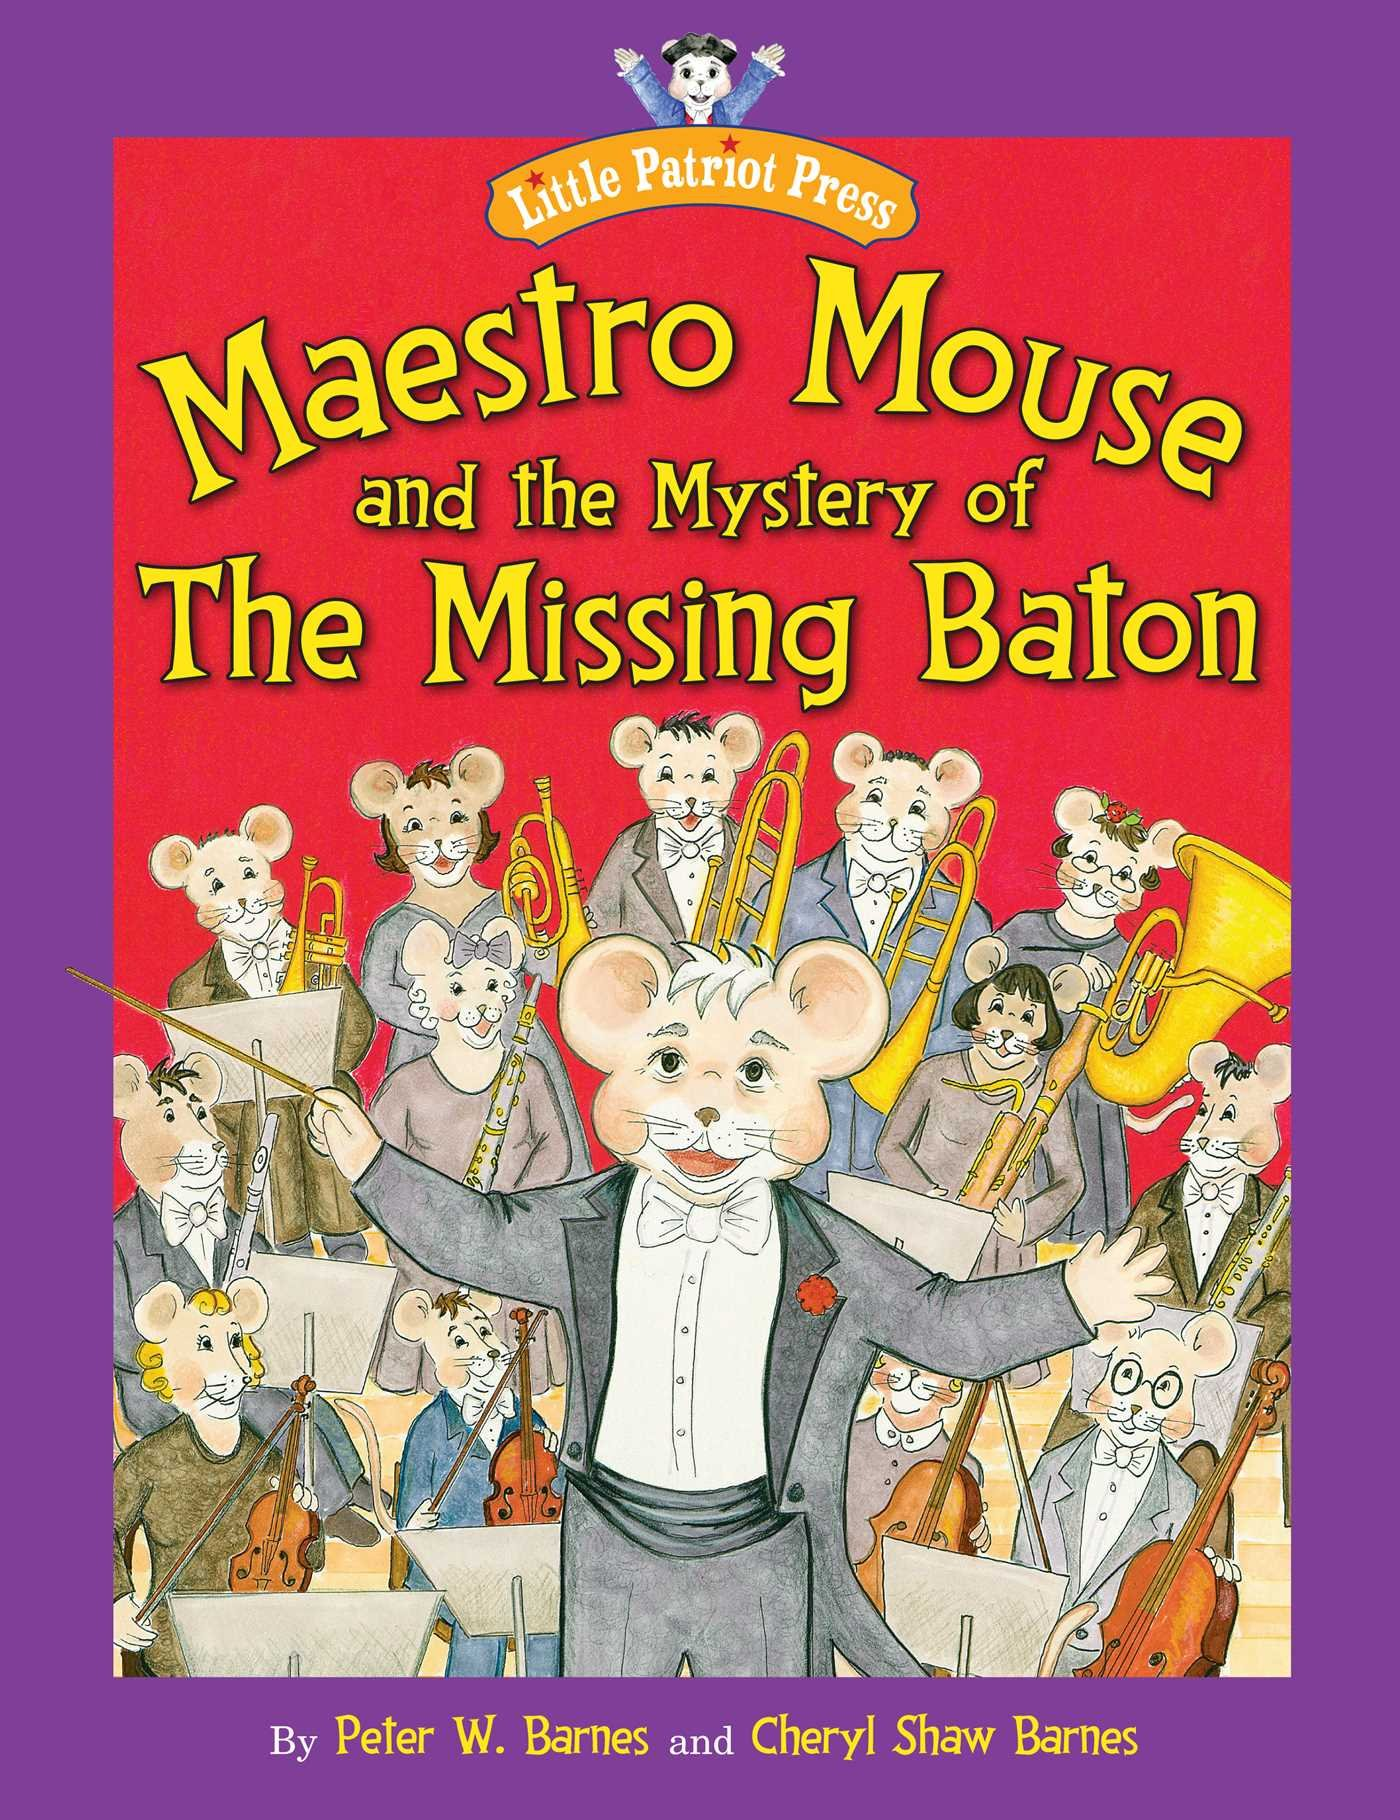 Download Maestro Mouse: And the Mystery of the Missing Baton (Little Patriot Press) PDF